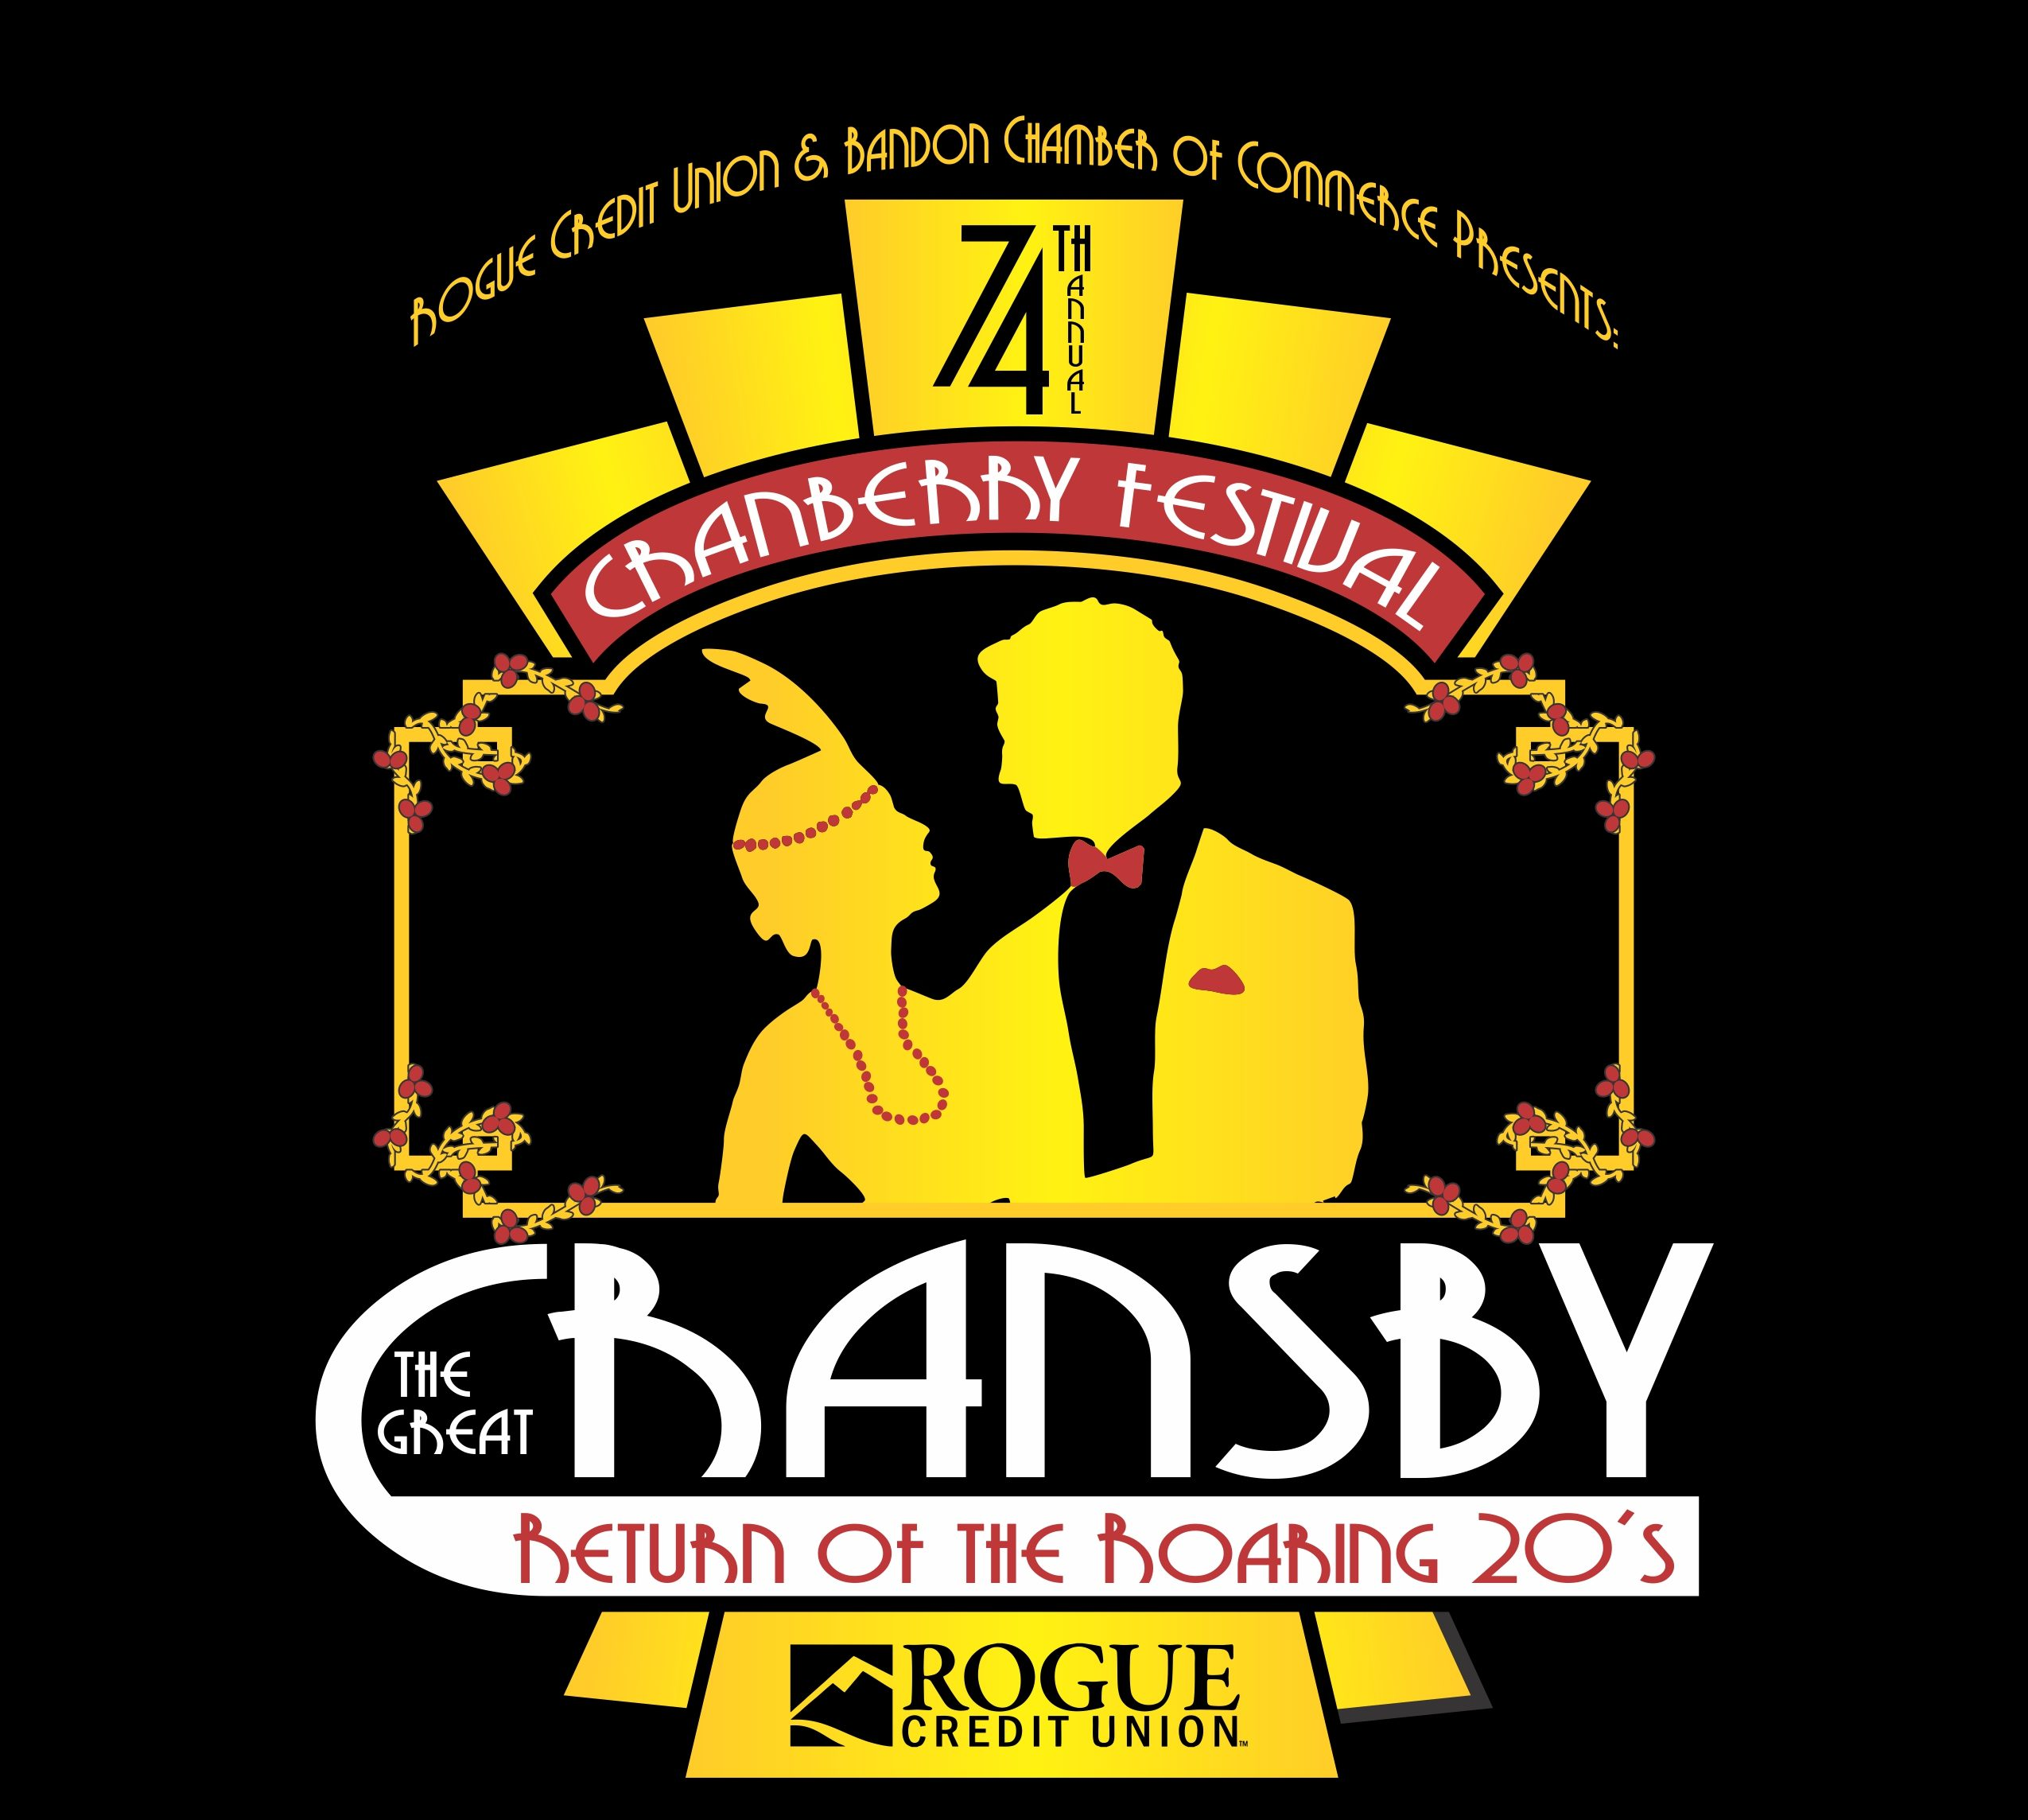 74th Annual Bandon Cranberry Festival - The Great Cransby, Return of the Roaring 20's. Sponsored by Rogue Credit Union